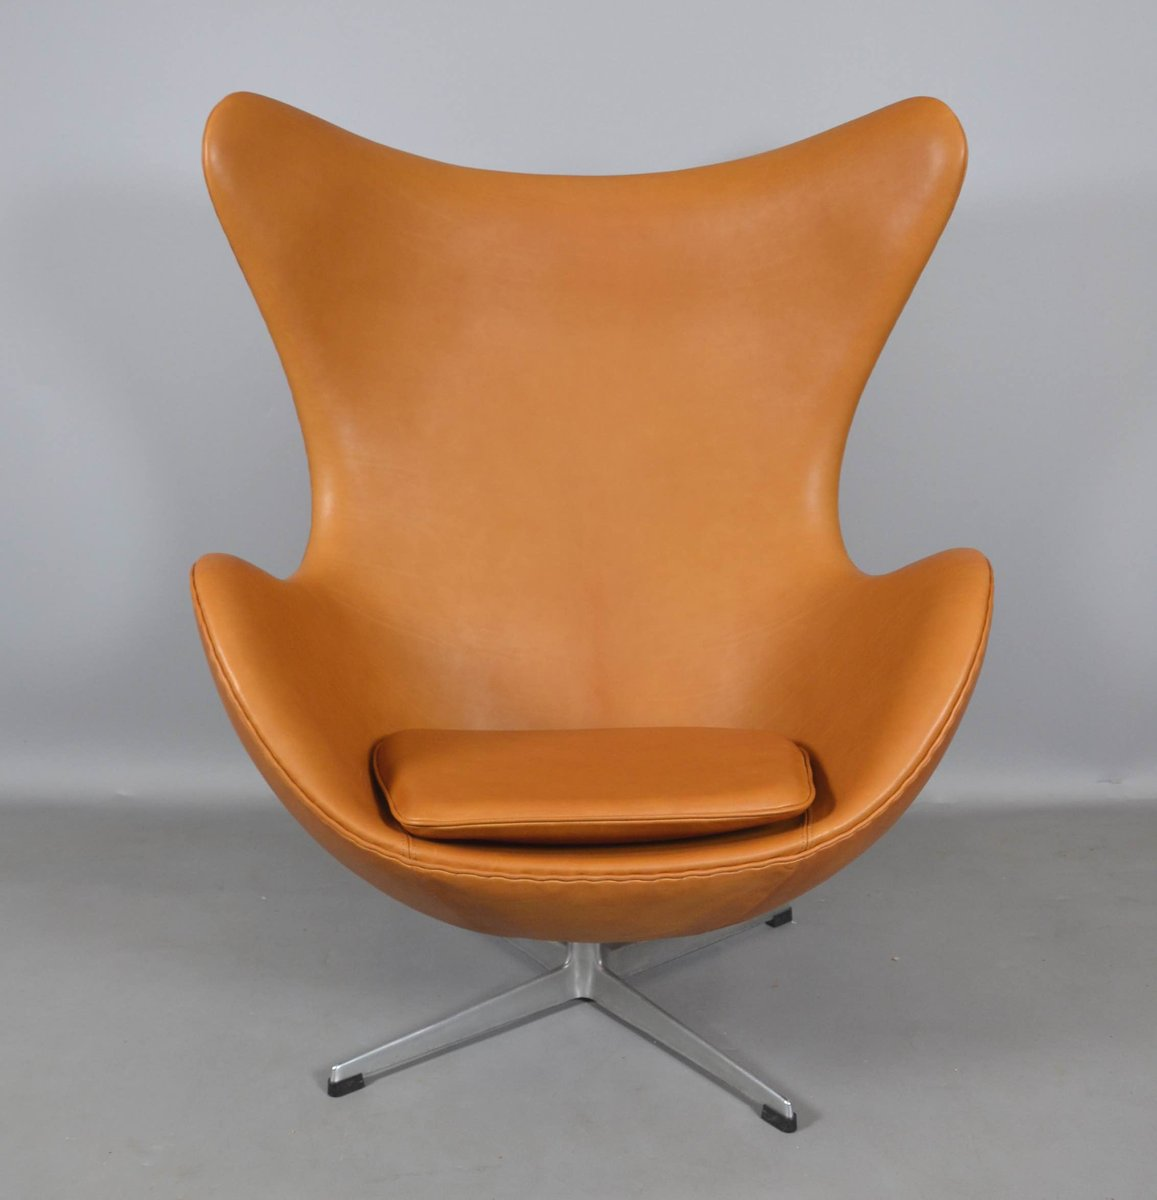 leather egg chair by arne jacobsen for fritz hansen 1970s for sale at pamono. Black Bedroom Furniture Sets. Home Design Ideas